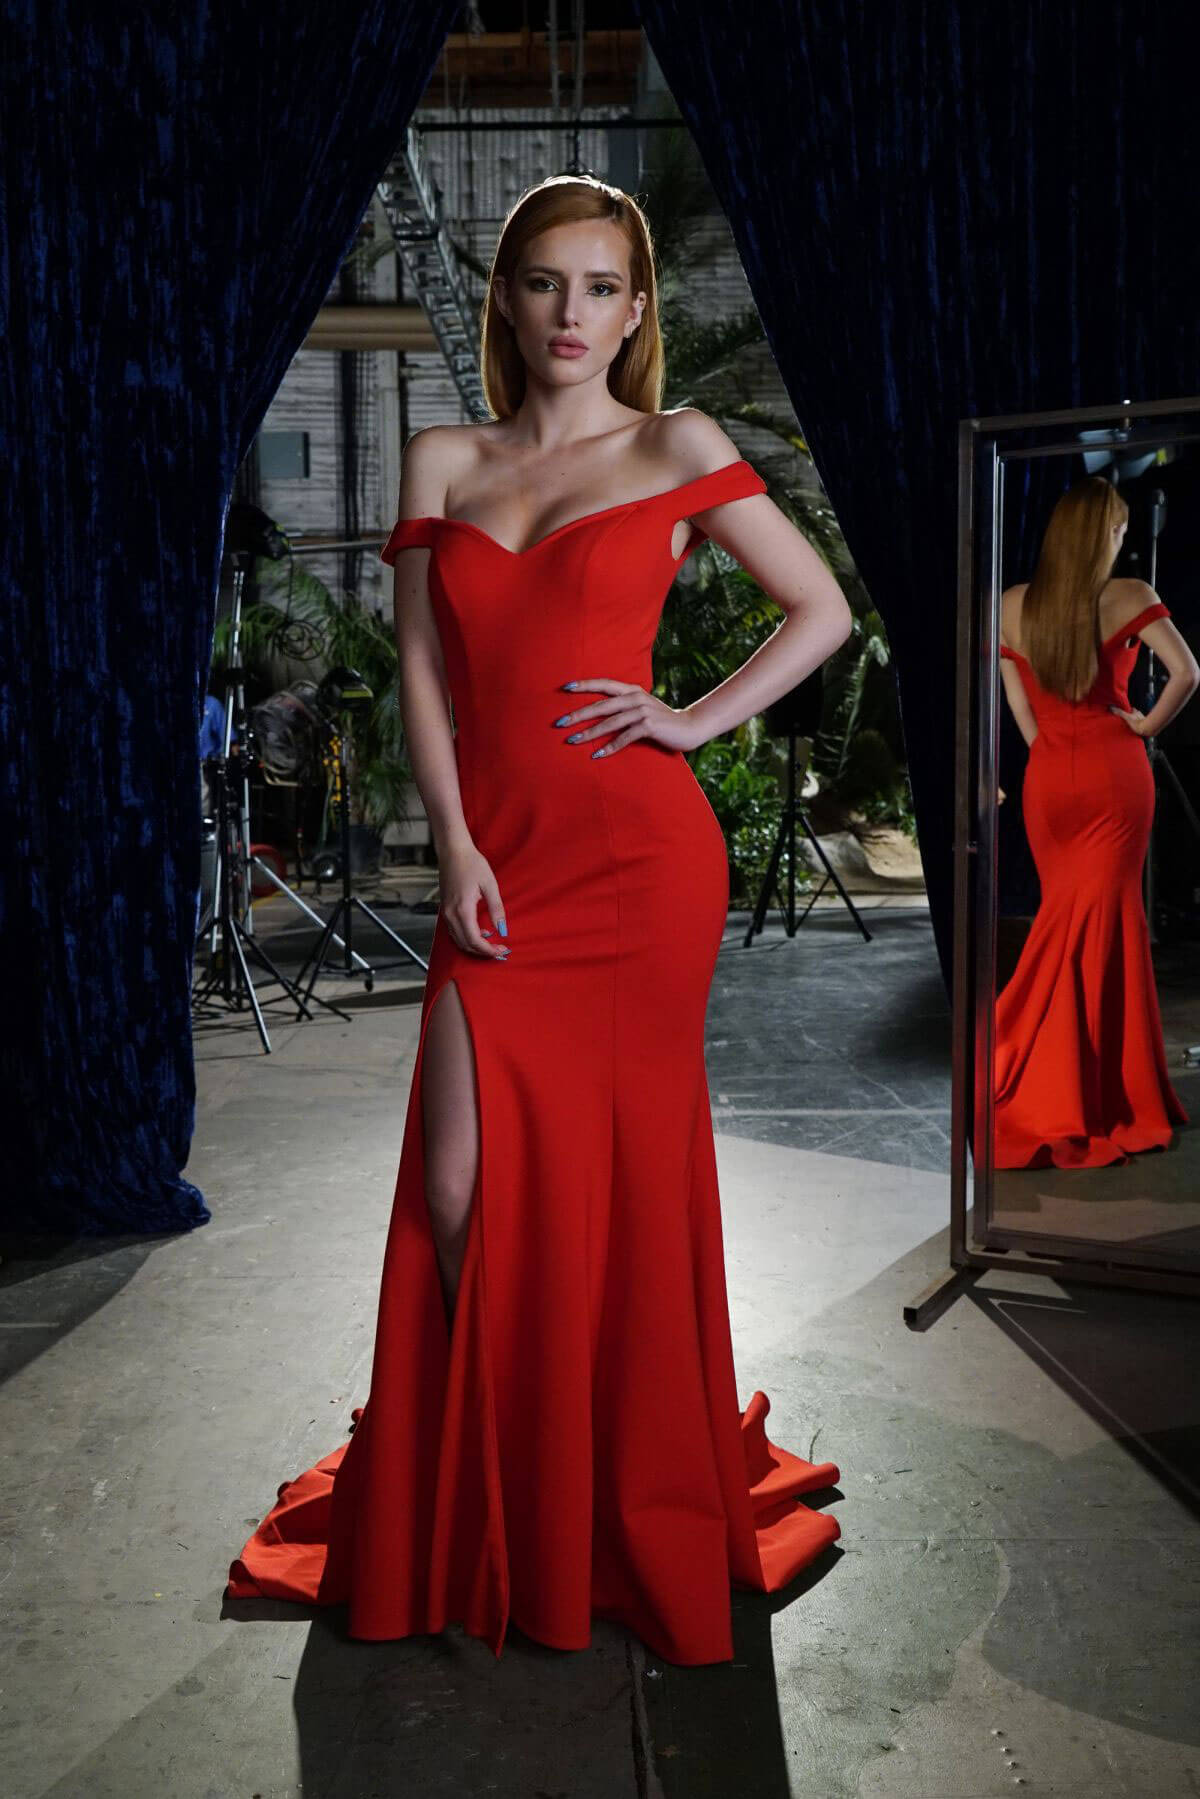 Bella Thorne at Famous in Love, Season 1 Episode - 03, Promos